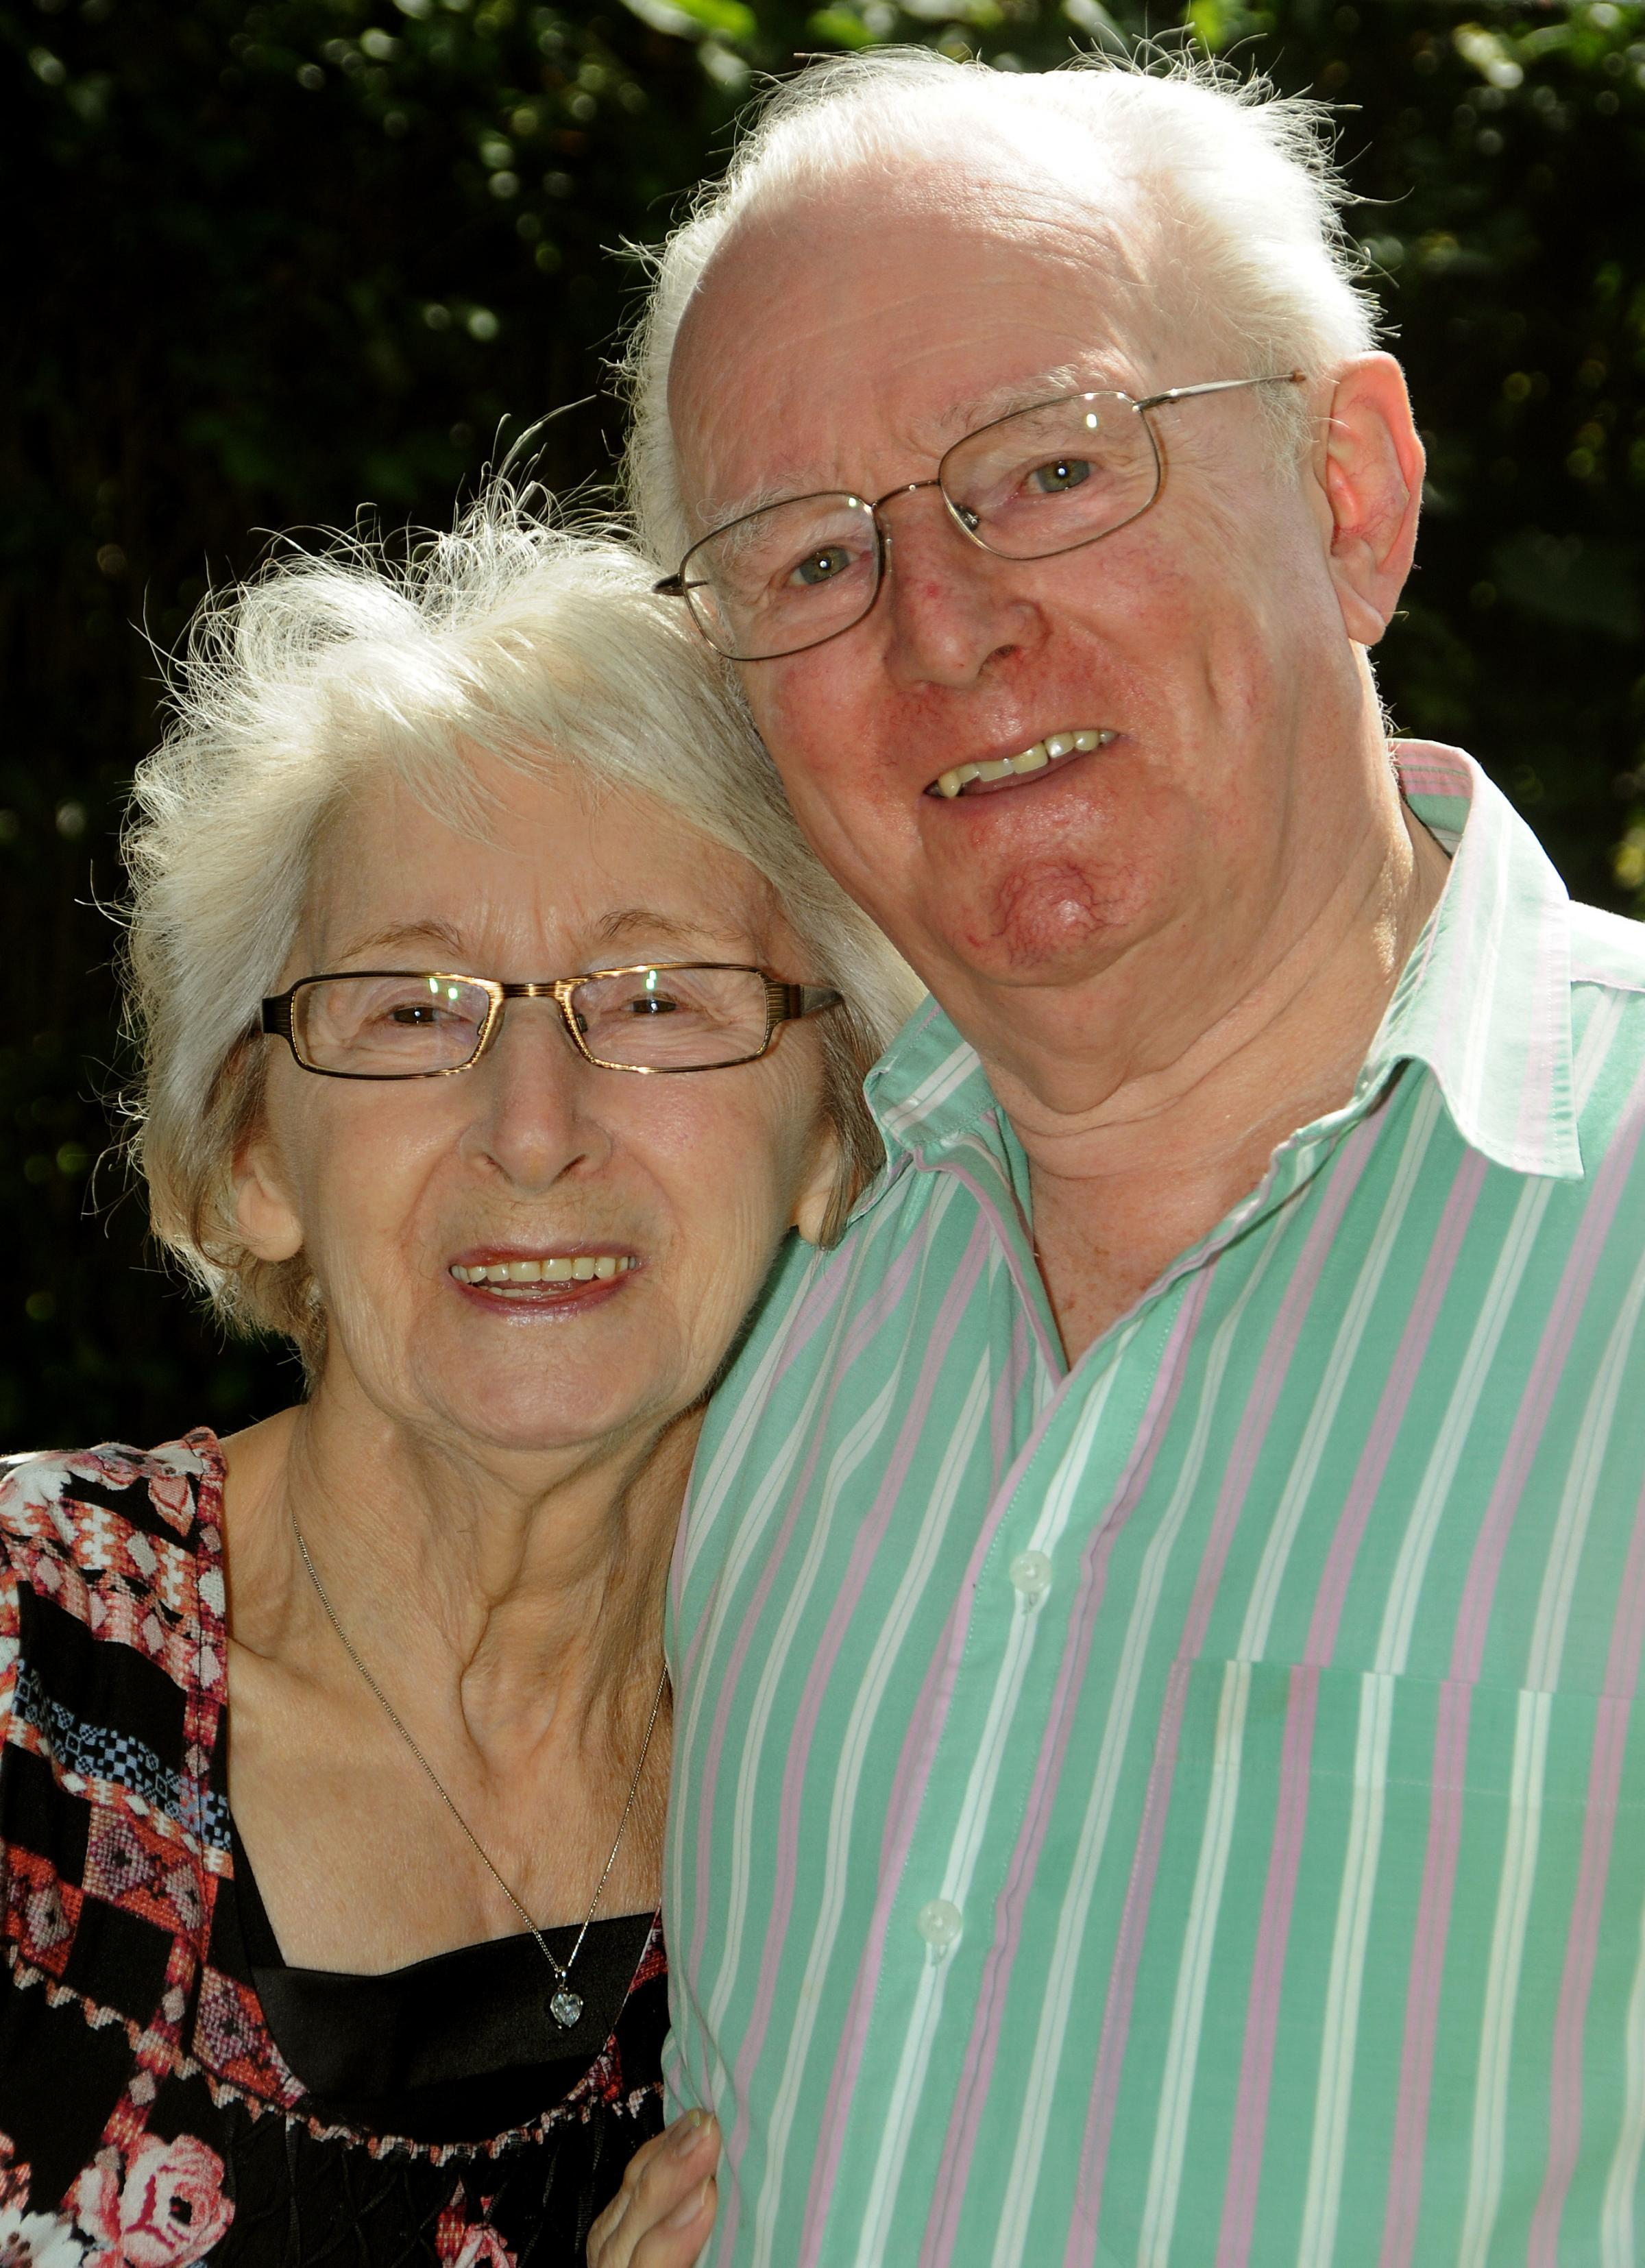 New Earswick couple celebrate their diamond wedding anniversary